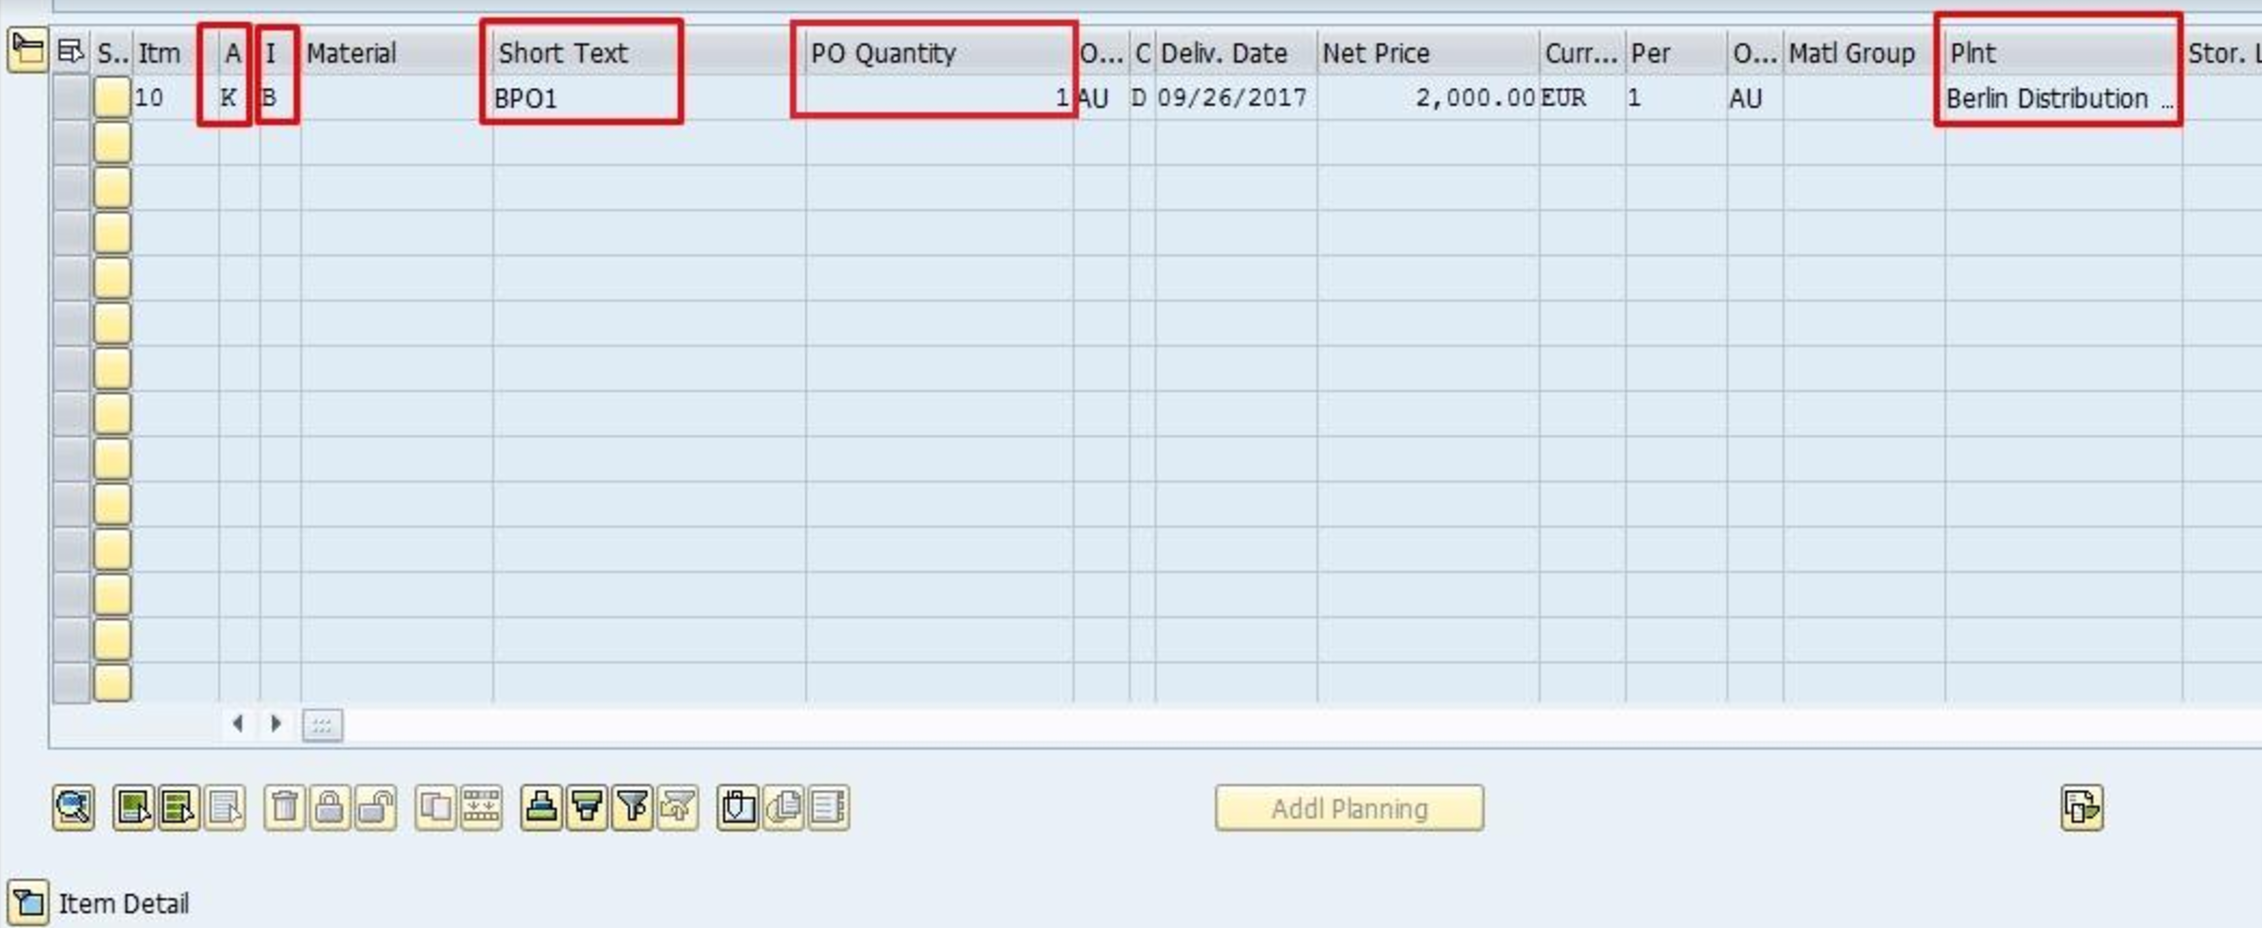 SAP Blanket Purchase Order Tutorial - Free SAP MM Training